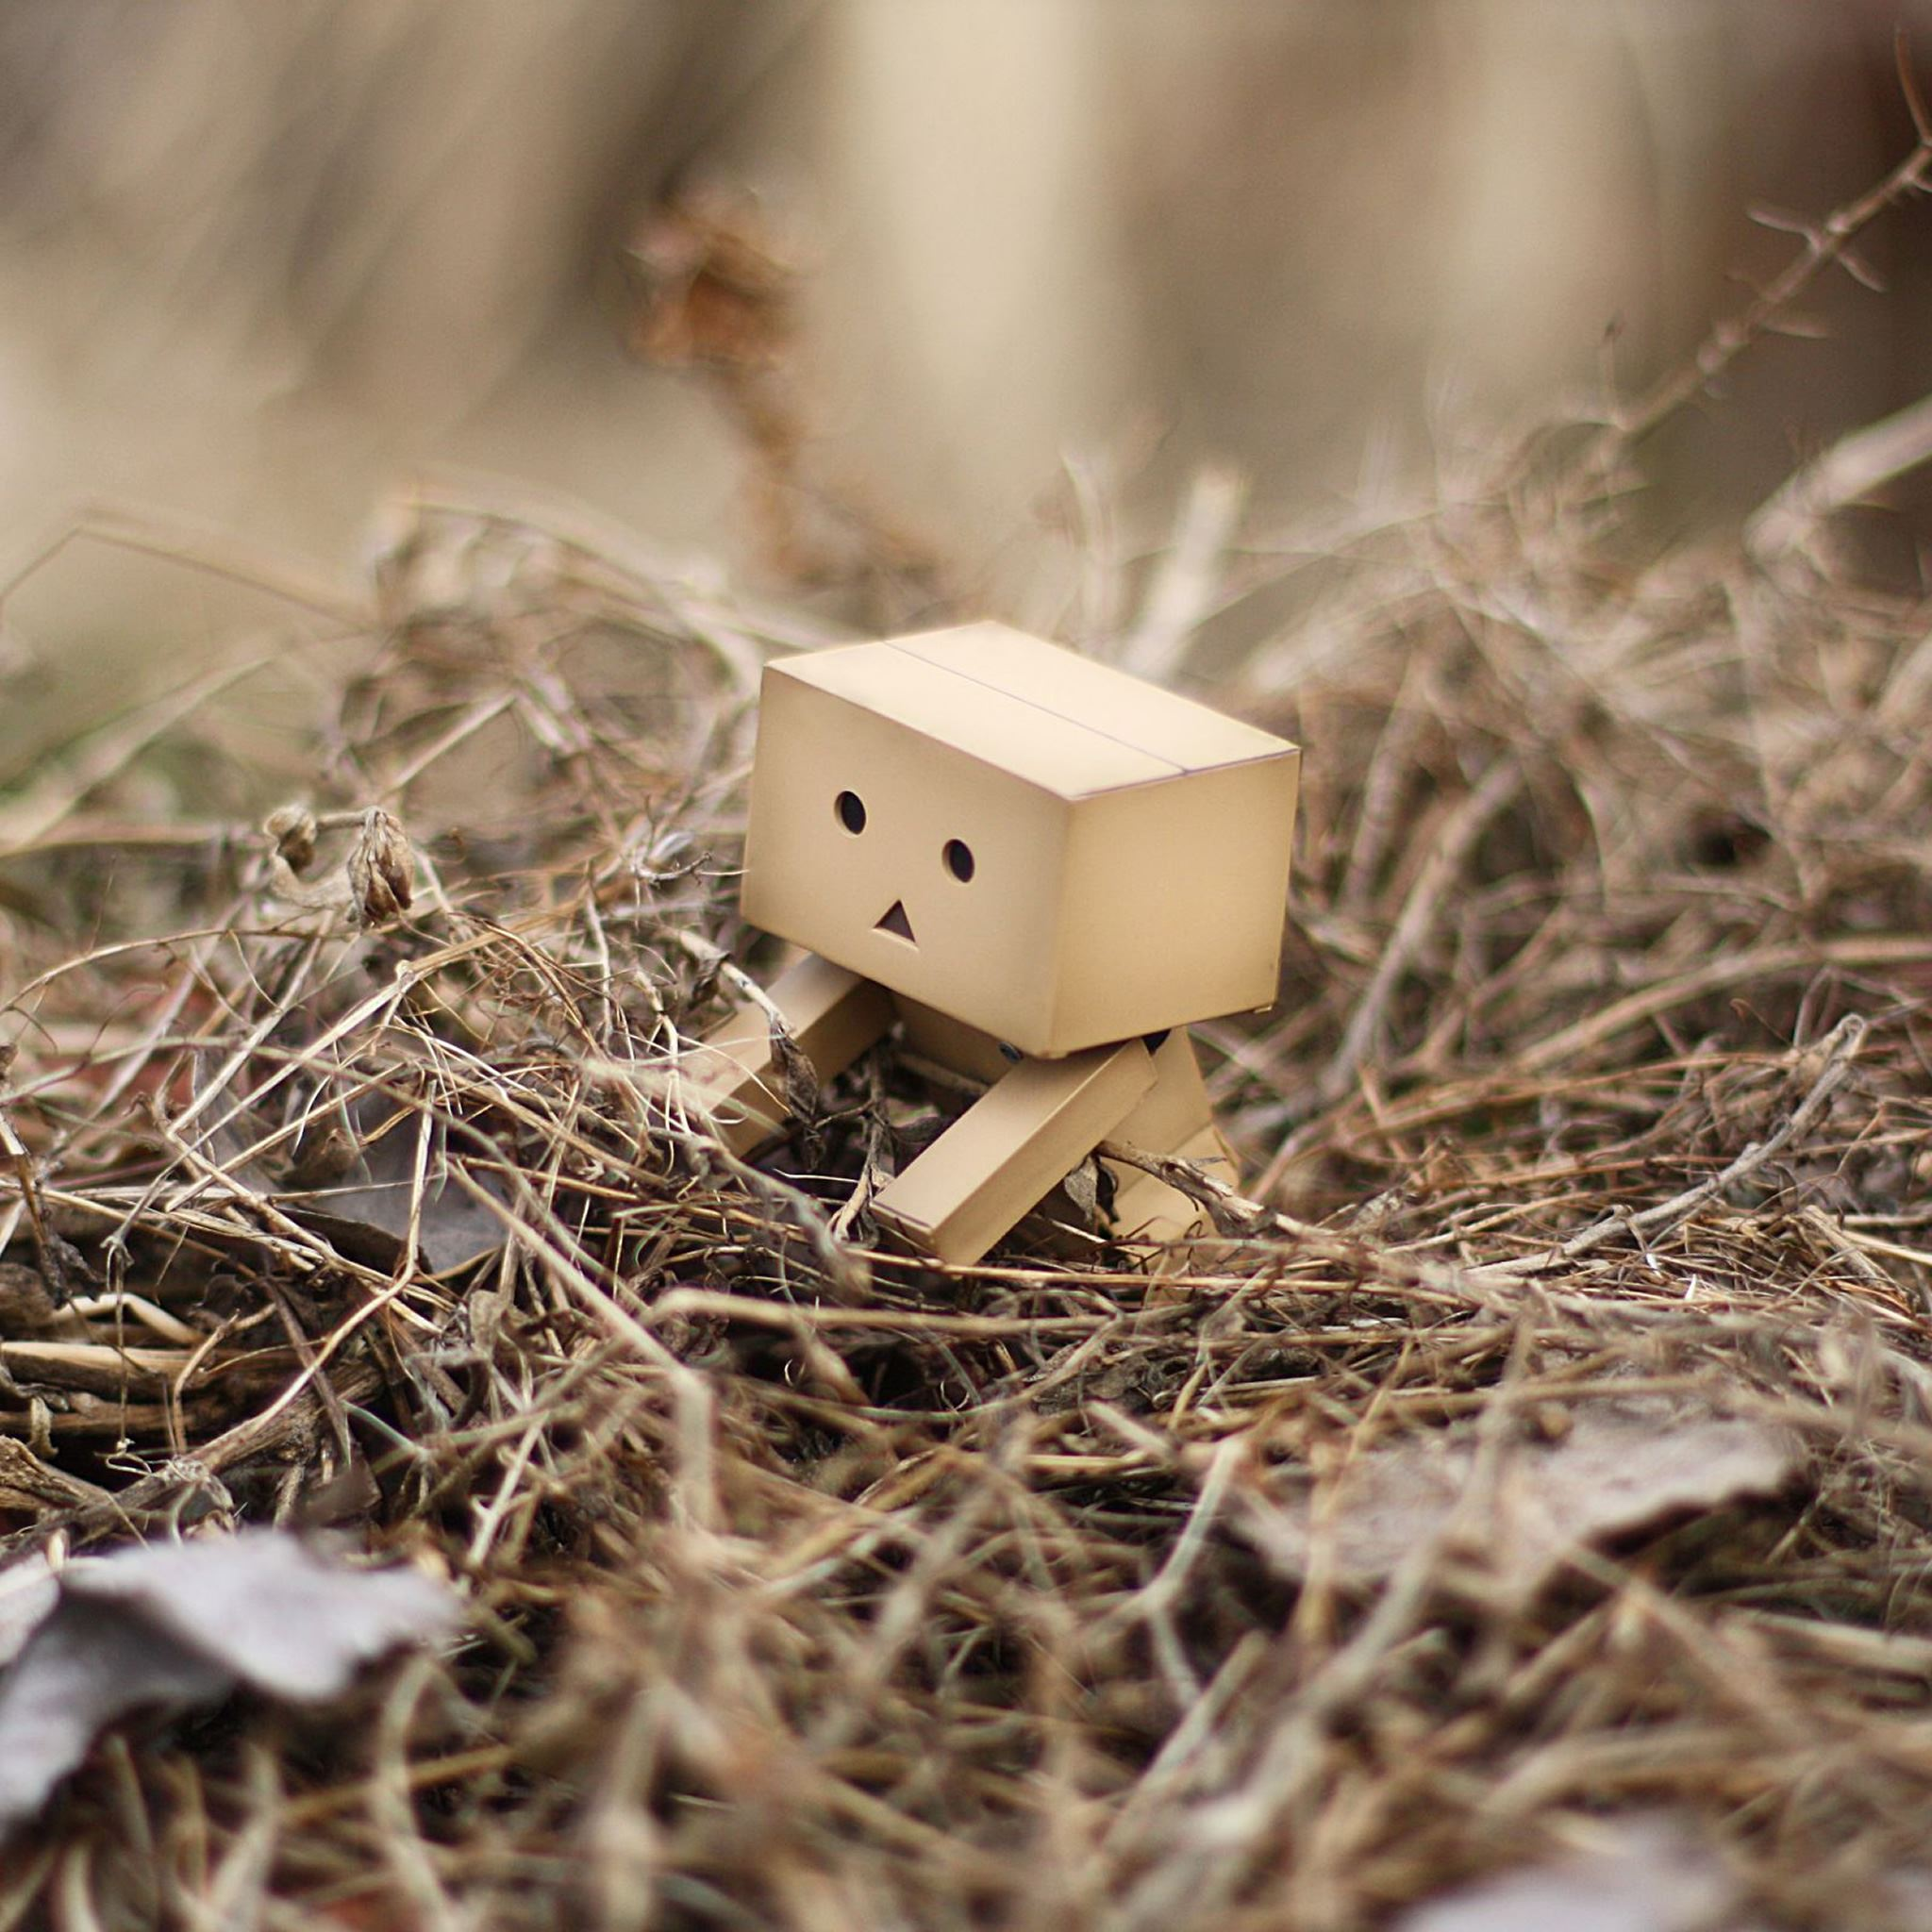 Danbo HD iPad Air wallpaper